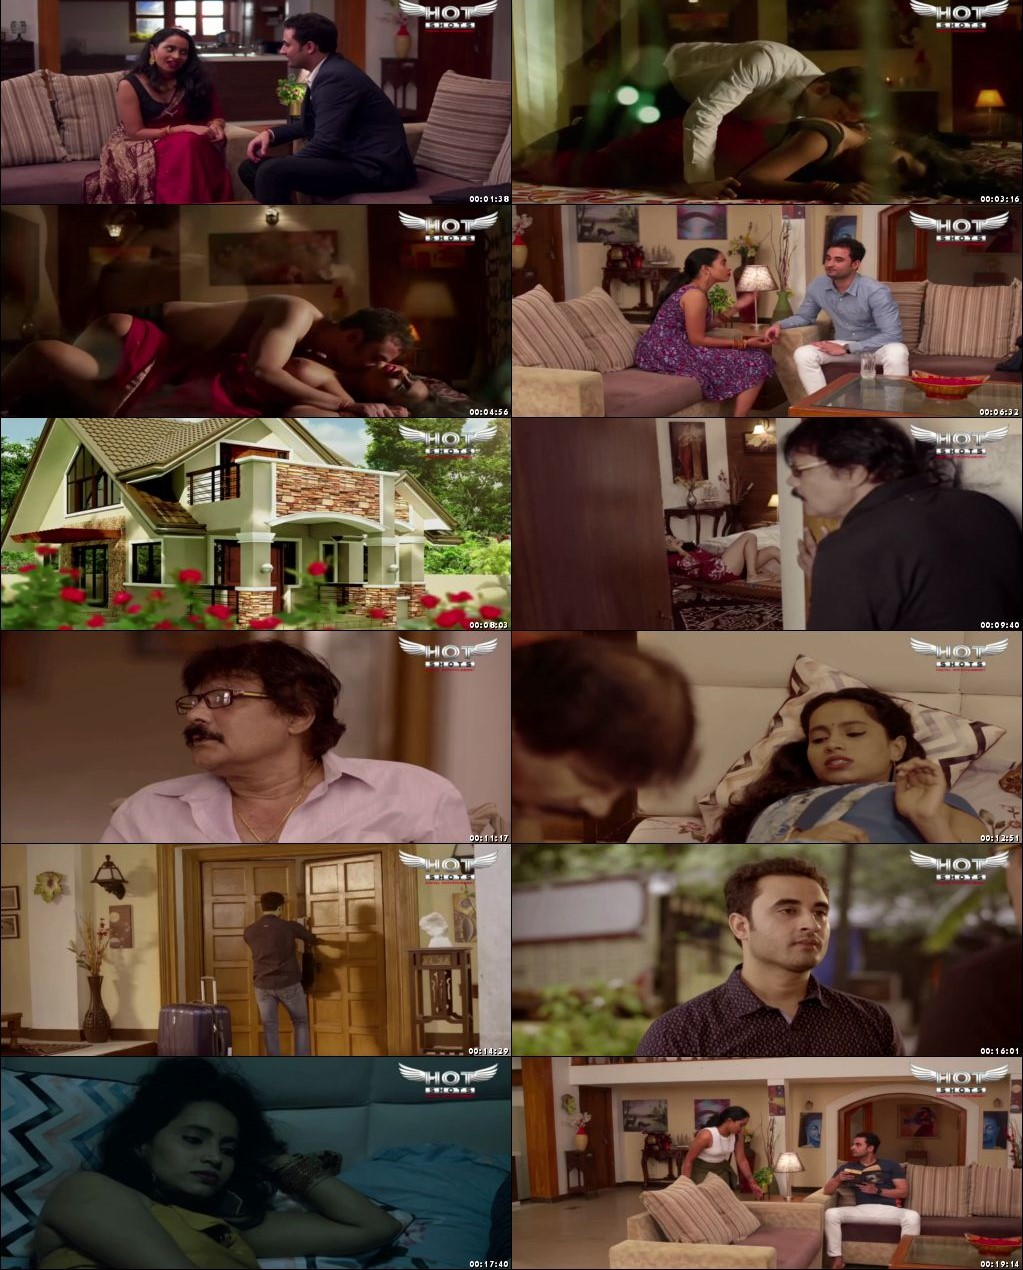 In Laws 2020 Full Hindi Episode HDRip 720p Online Watch